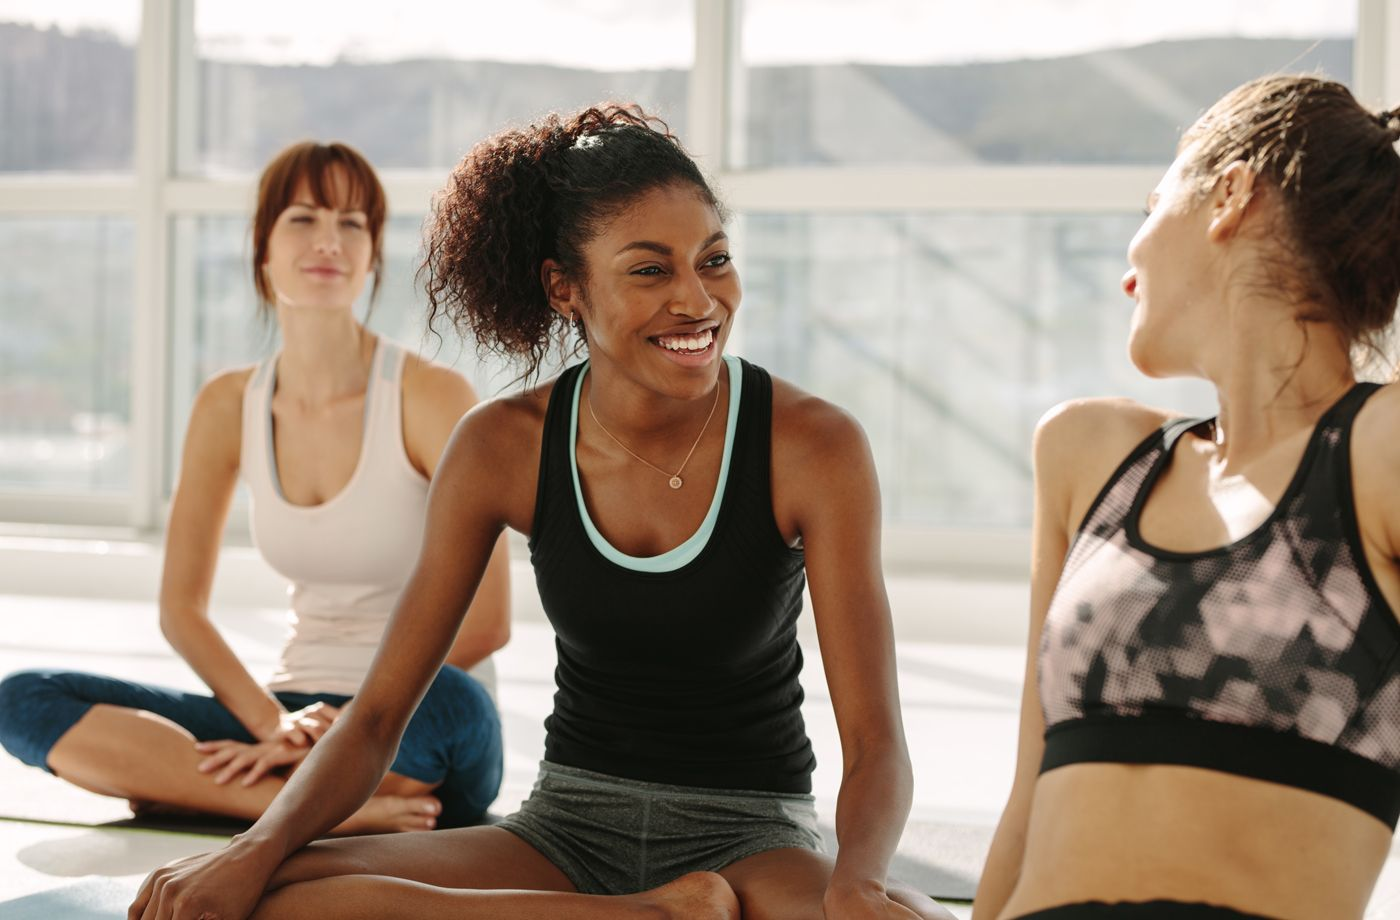 WHY WELLNESS SPACES HAVE BECOME *THE* SOCIAL HANGOUTS OF CHOICE